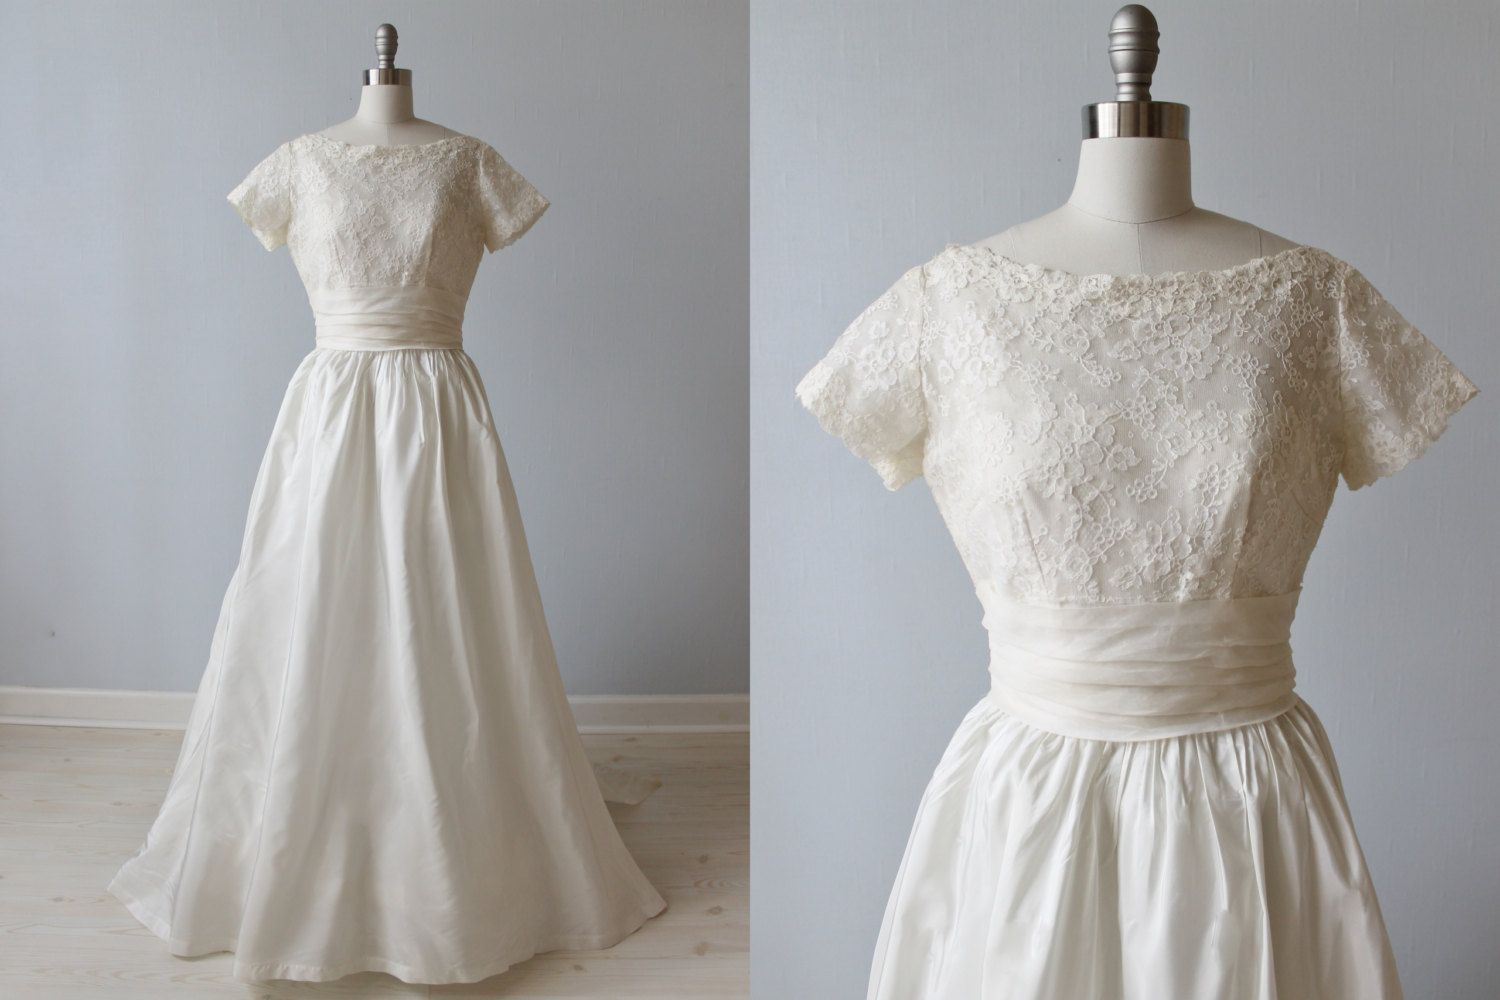 Priscilla of boston wedding dresses  Pin by s w e e t l o v e l y on W e d d i n g  Pinterest